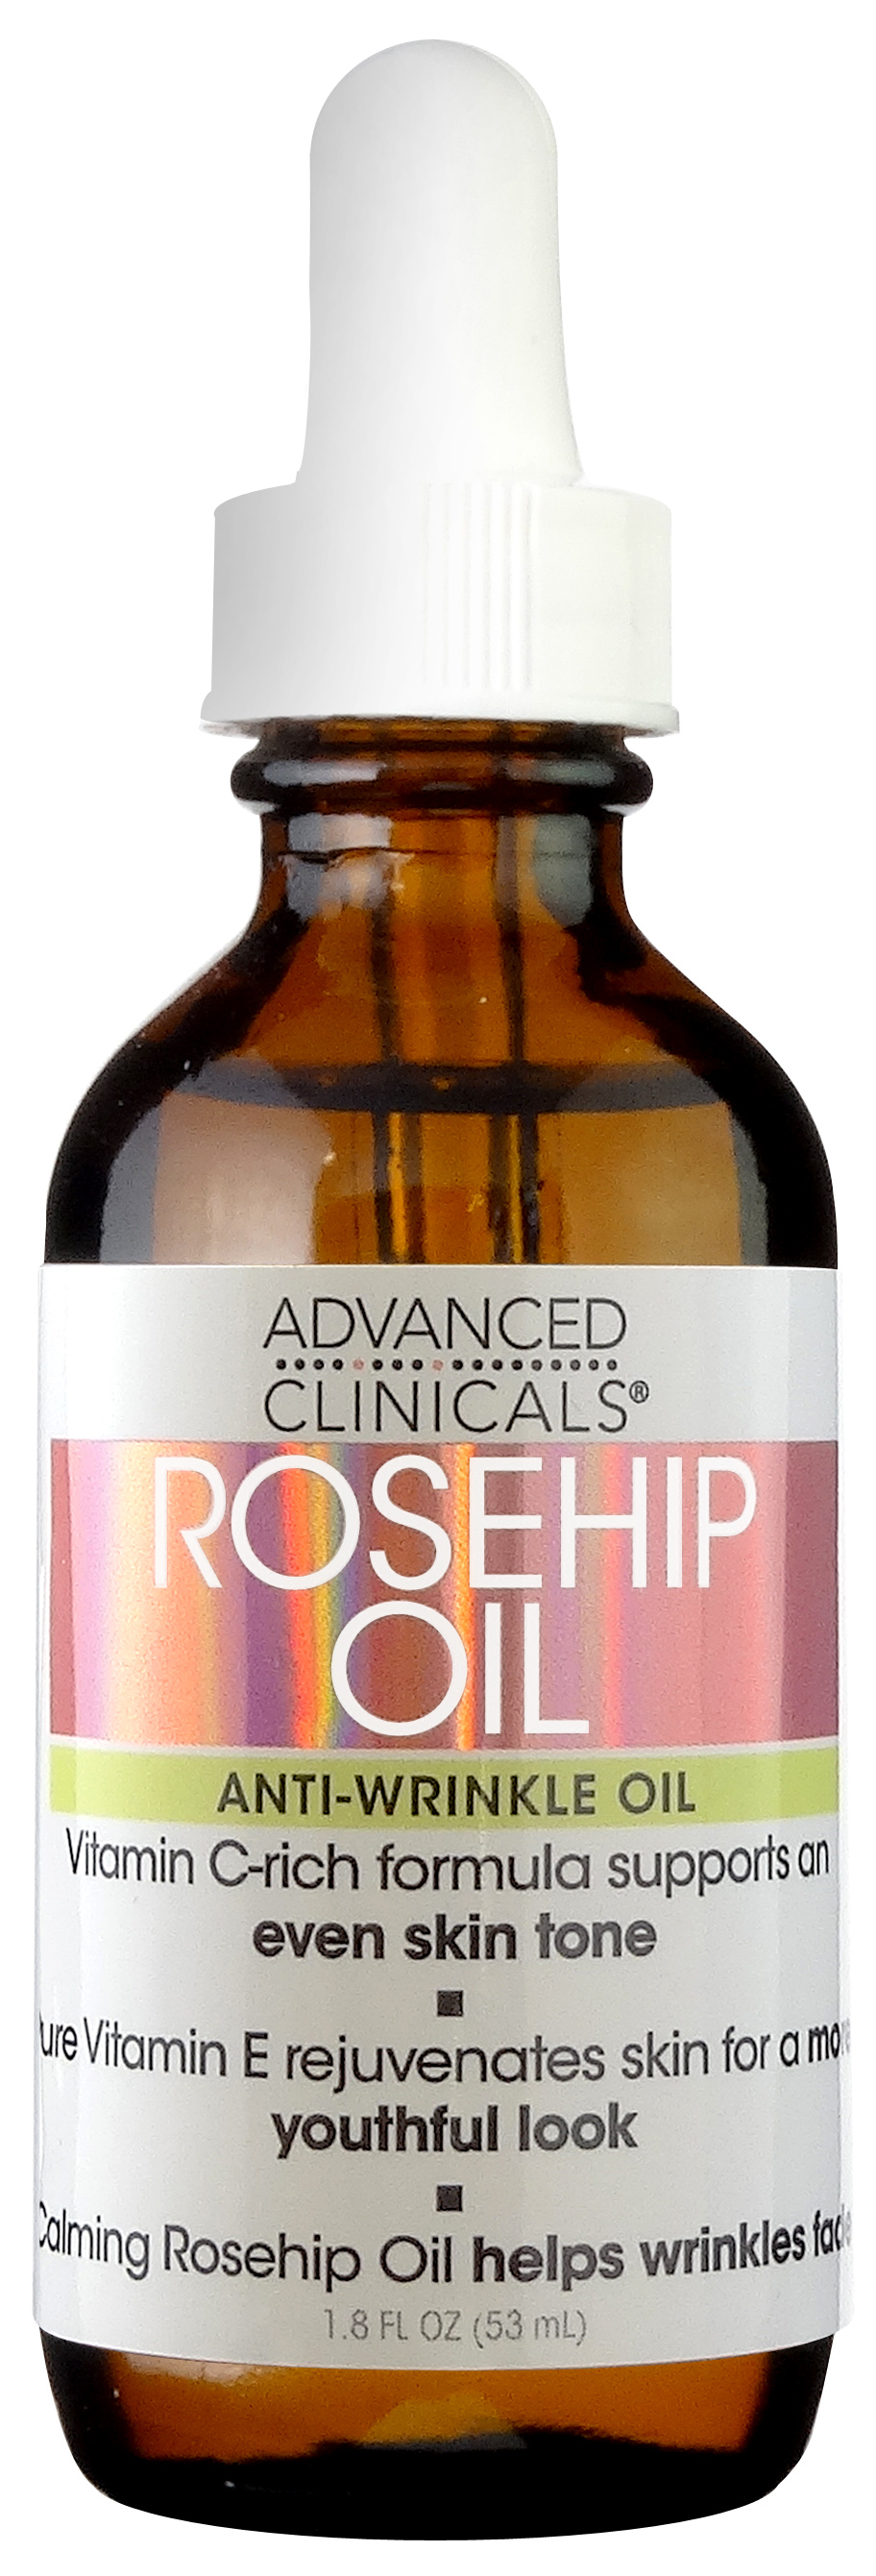 Image result for advanced clinical rosehip